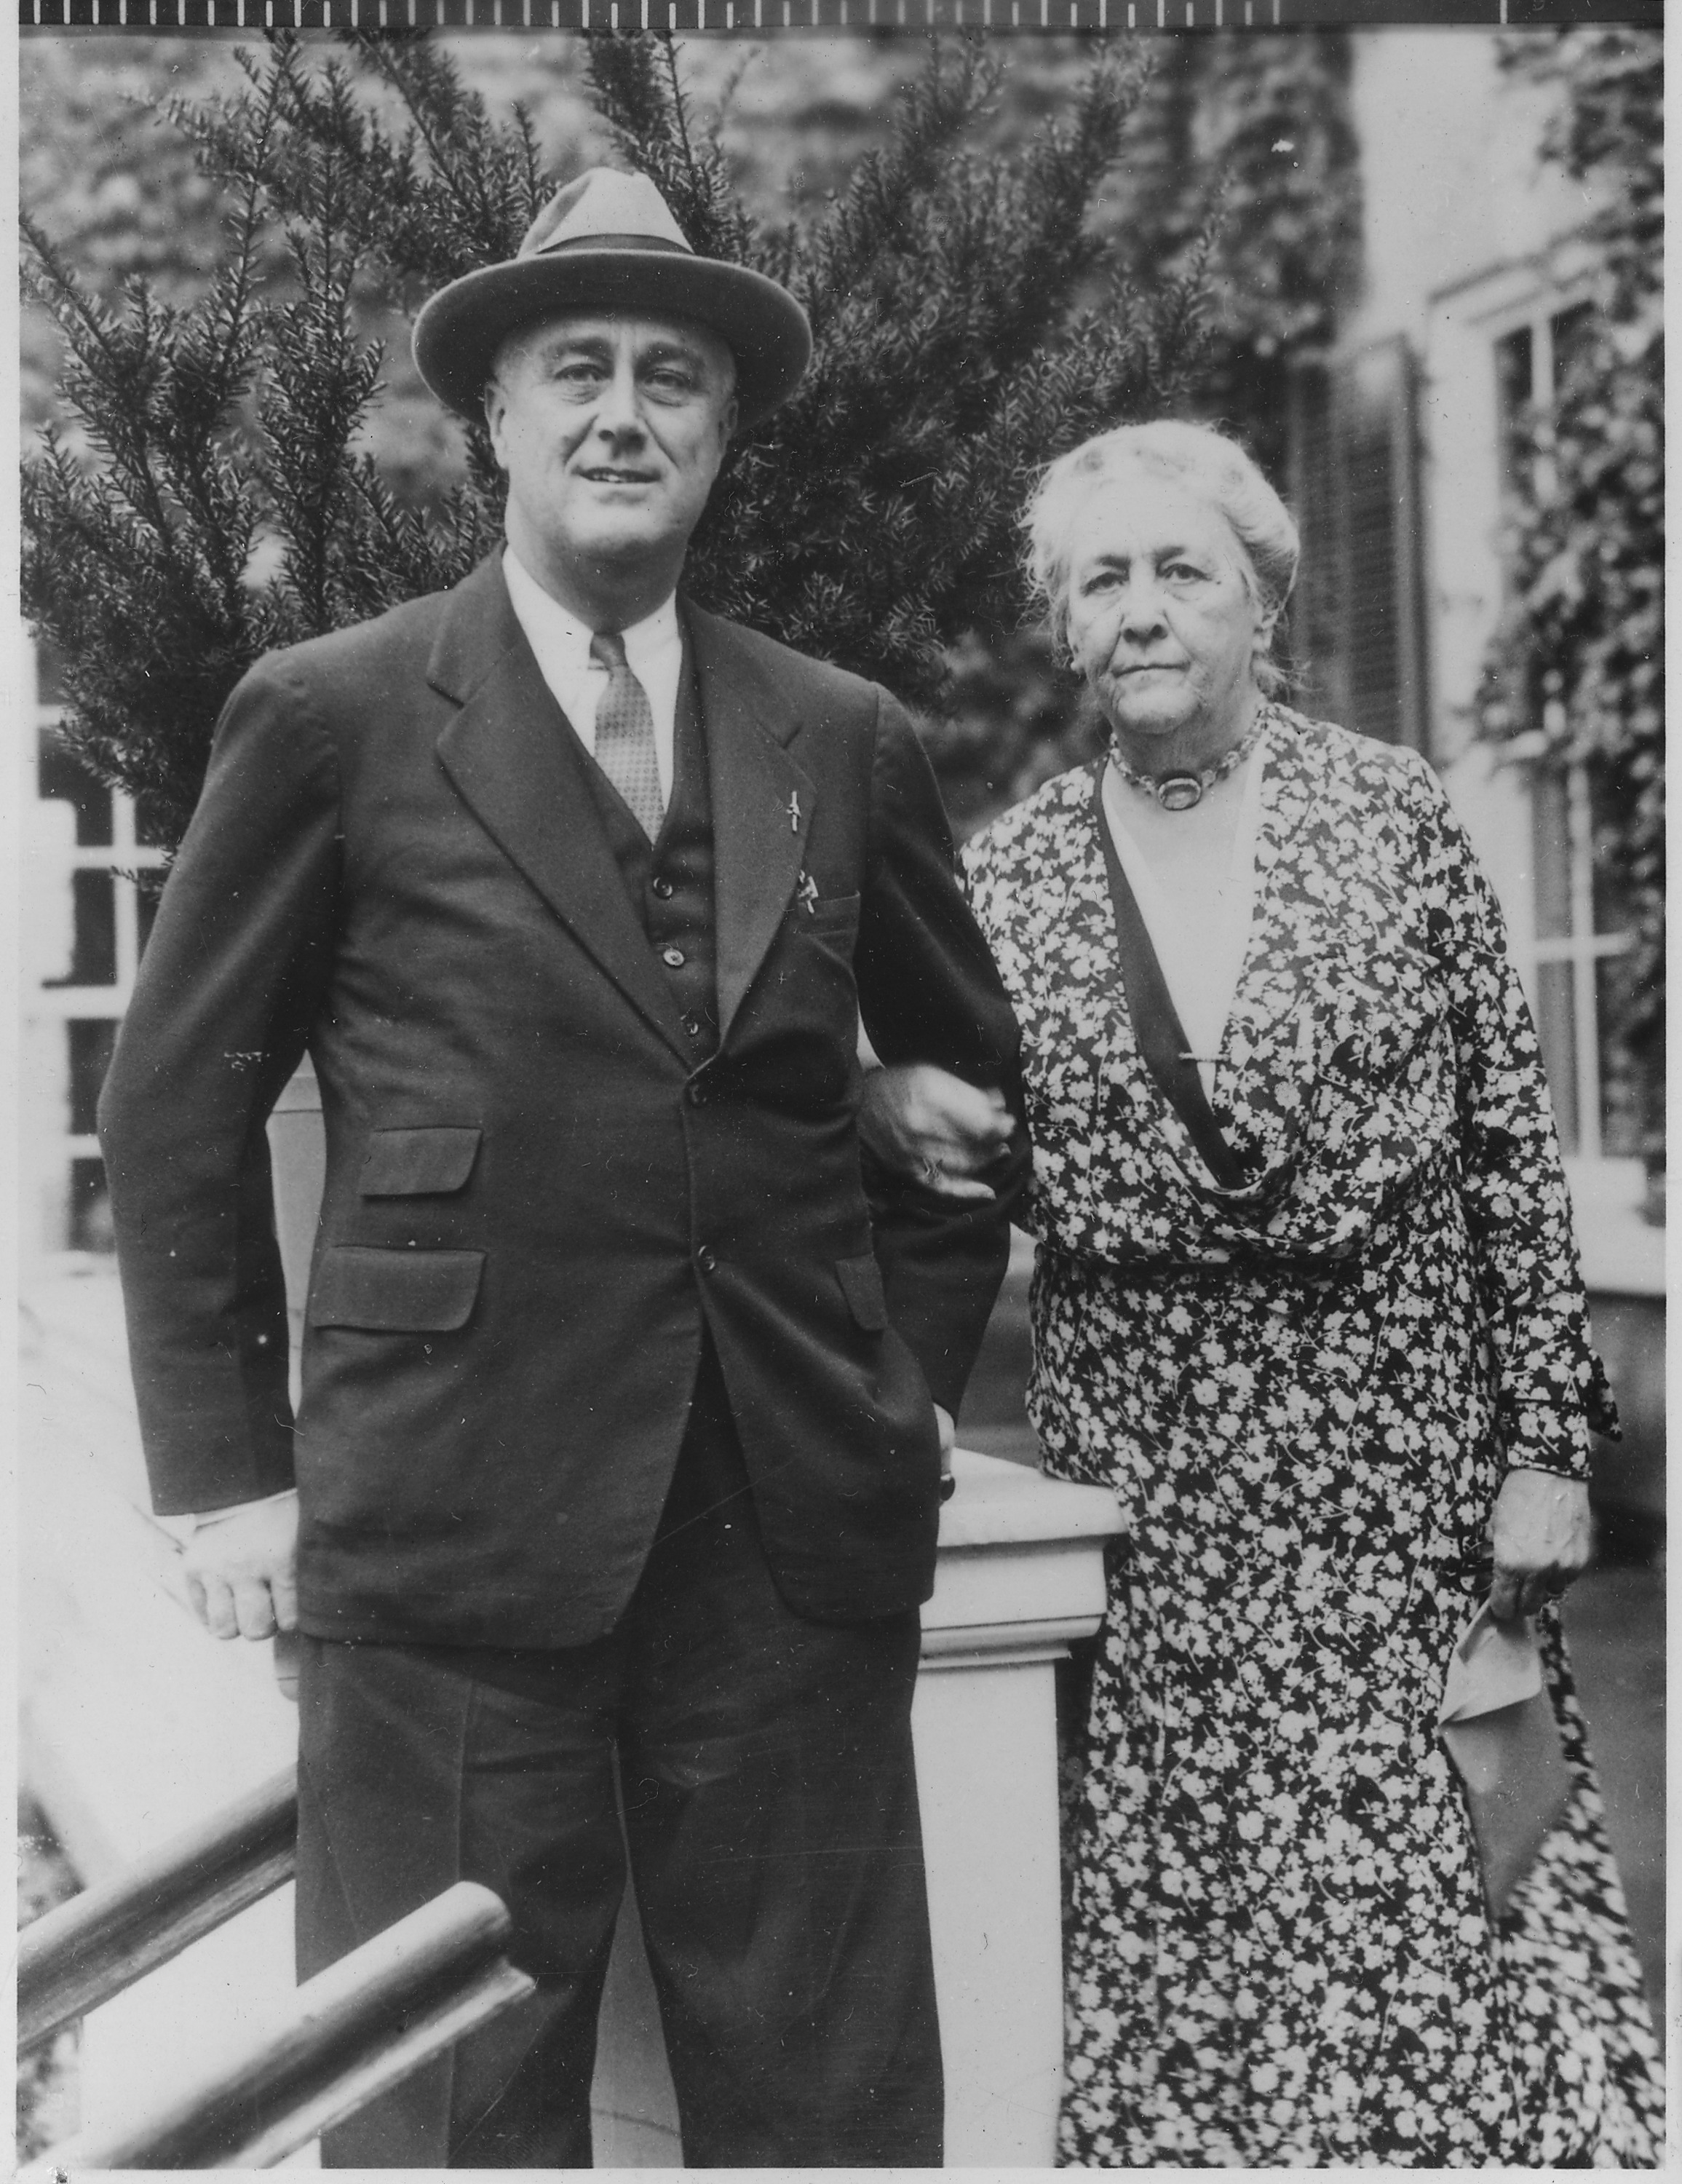 the early life of franklin delano roosevelt his overprotective franklin d roosevelt and sara delano roosevelt in hyde park new york nara